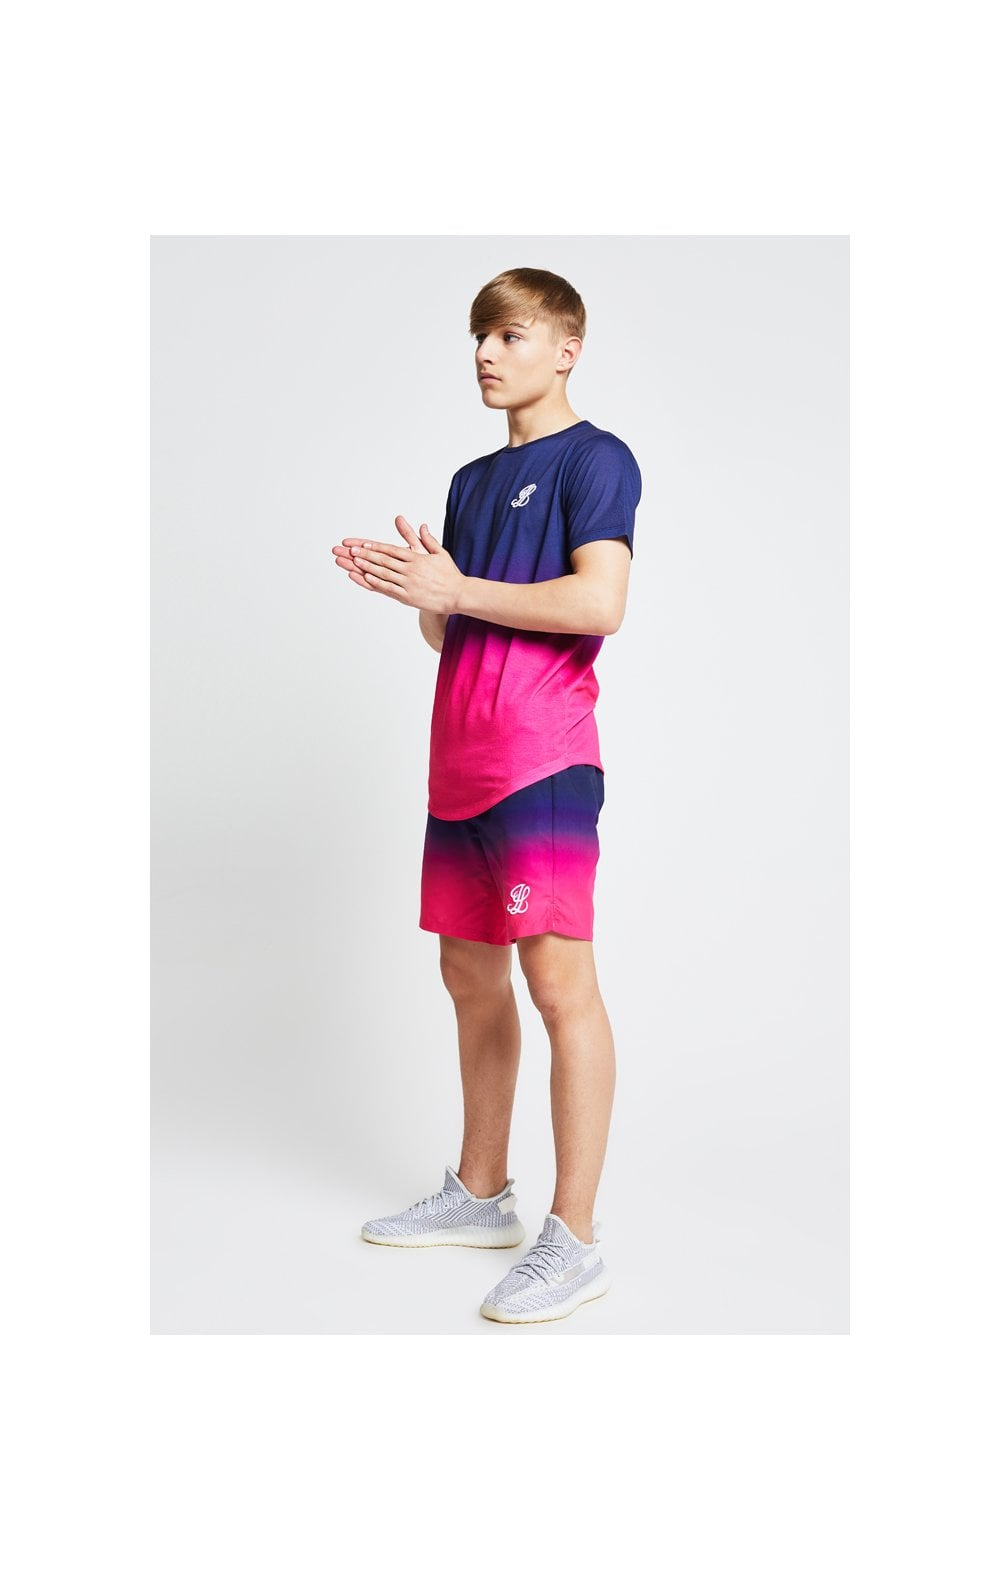 Illusive London Fade Swim Shorts - Navy & Pink (1)